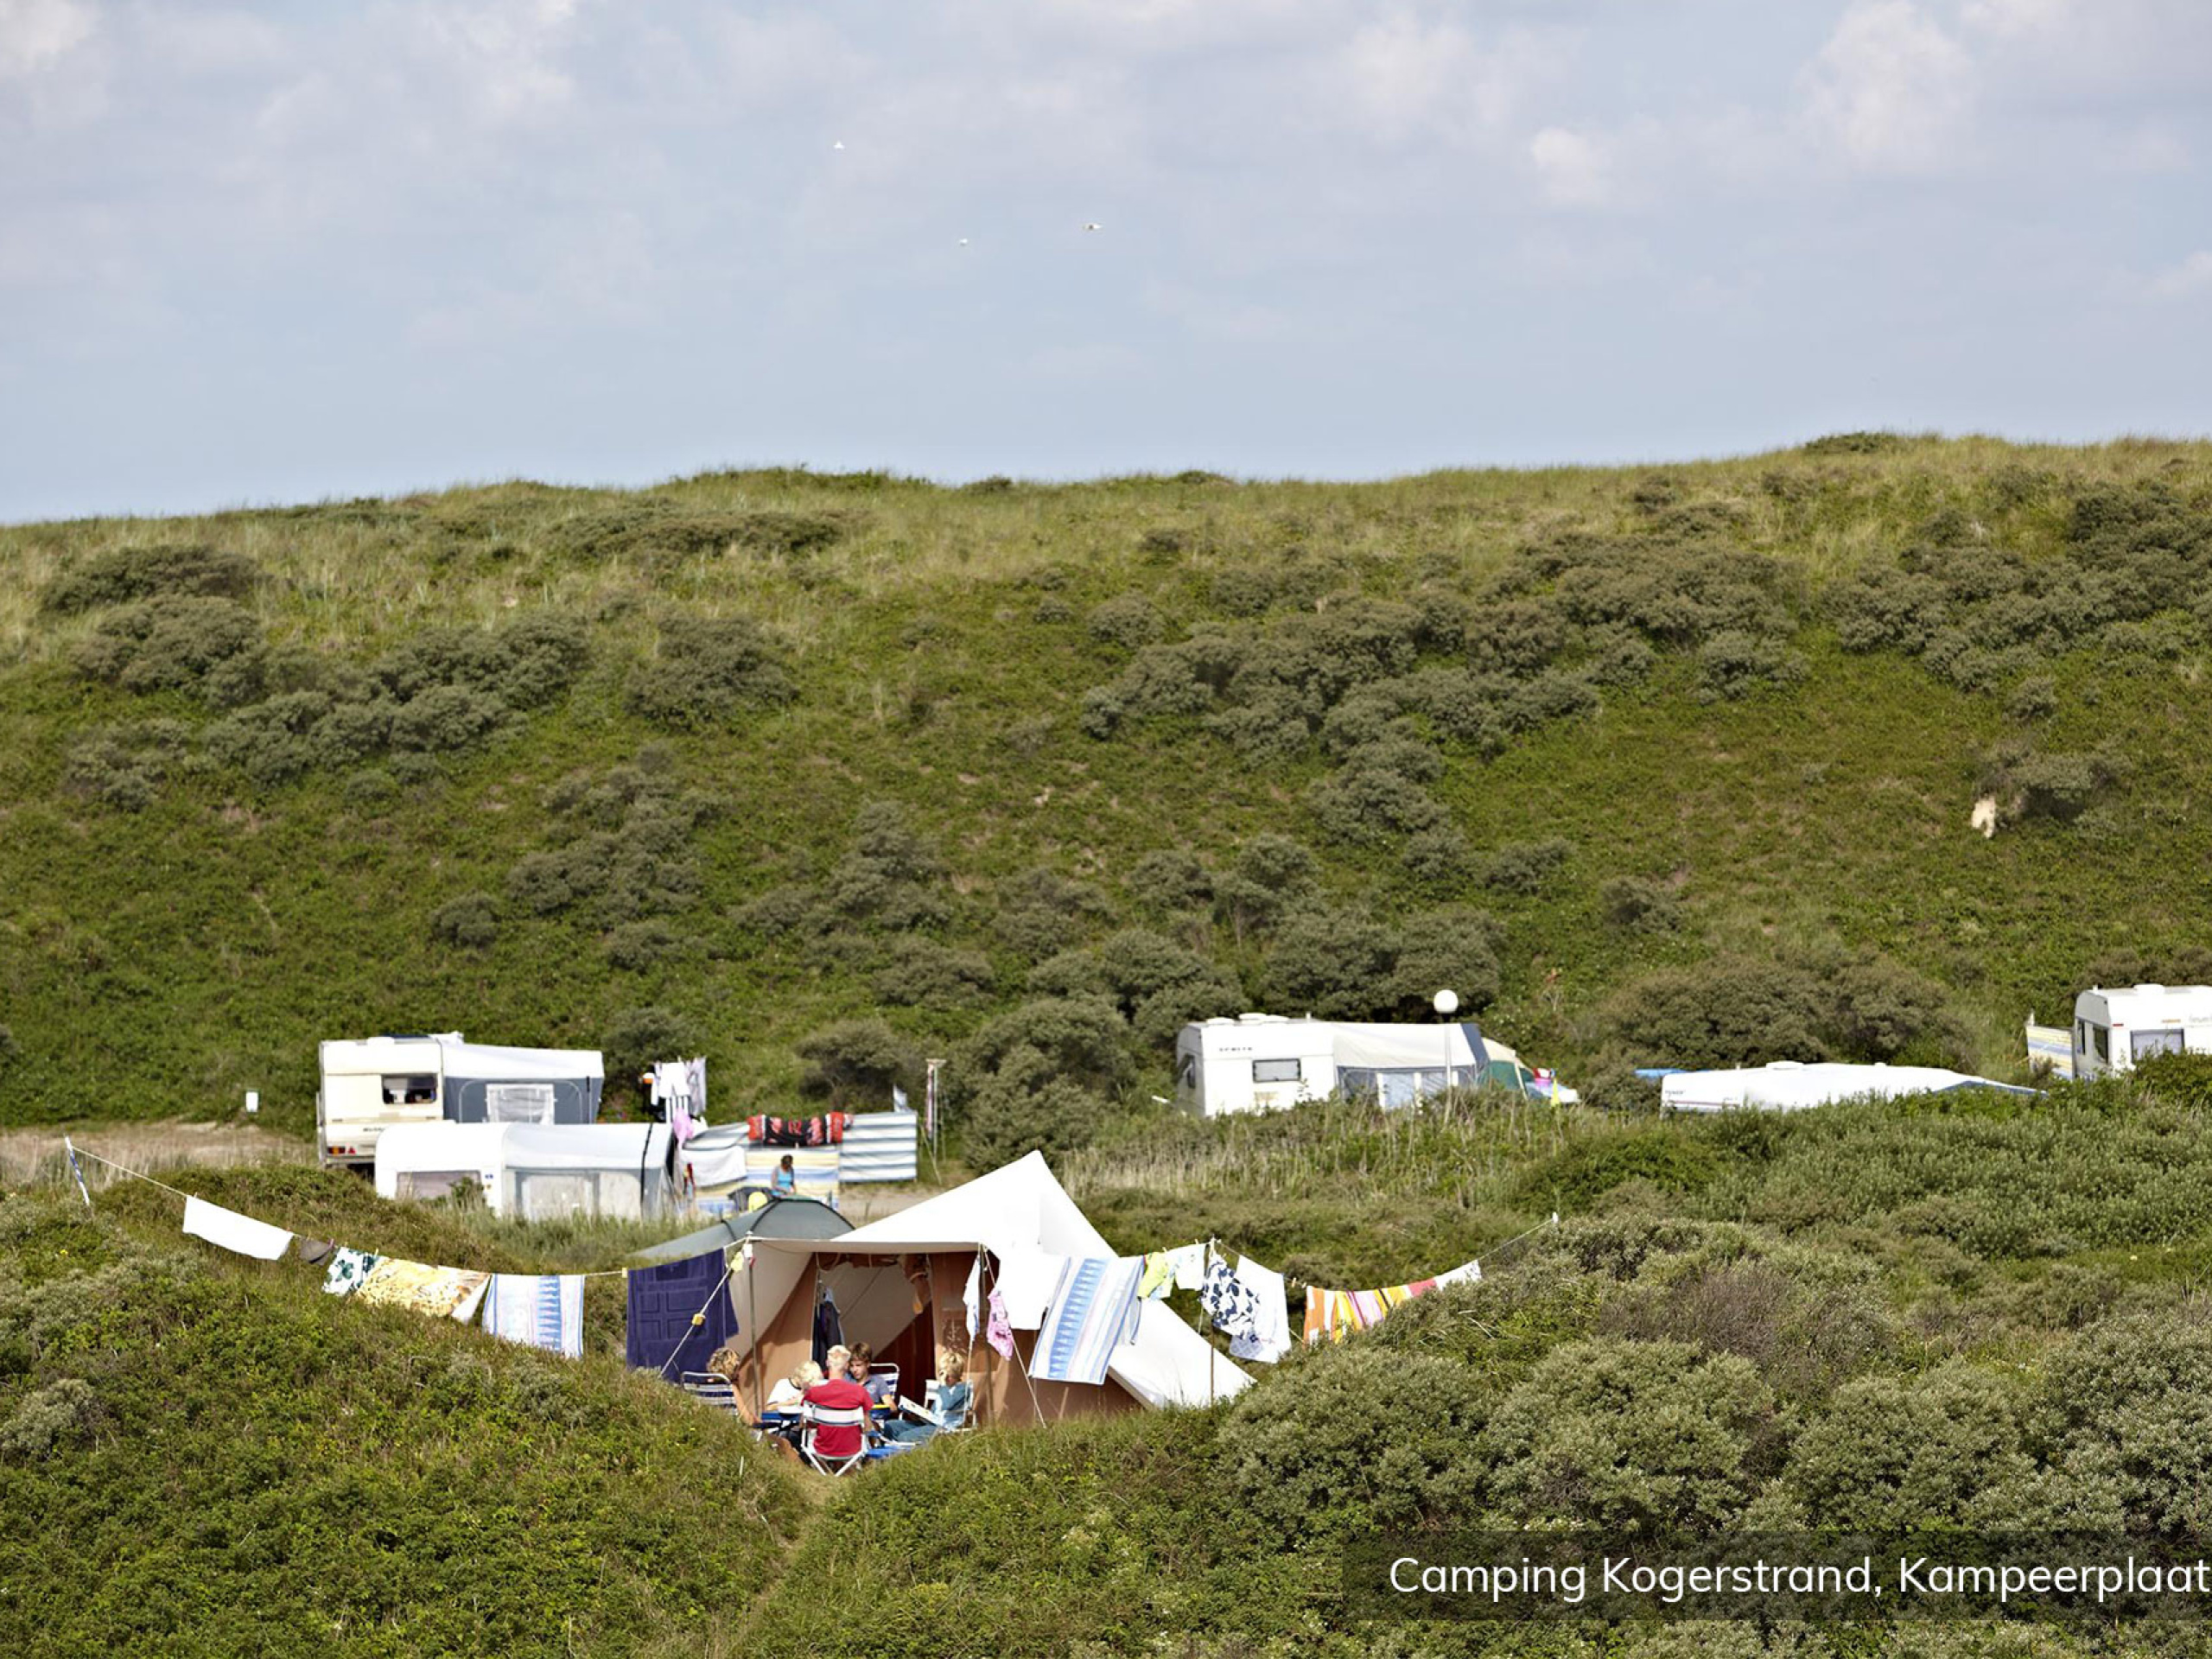 Camping in beautiful spot in the middle of the dunes of Texel in De Koog